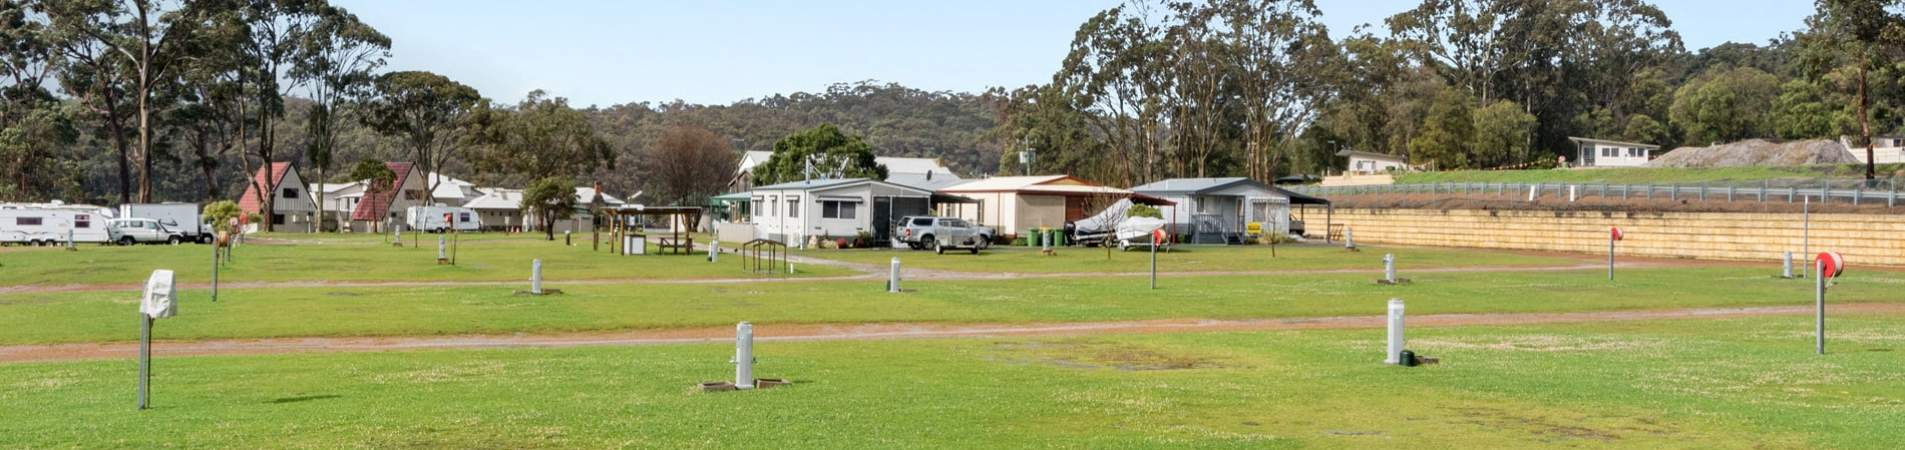 walpole rest point caravan park accommodation - banner 5